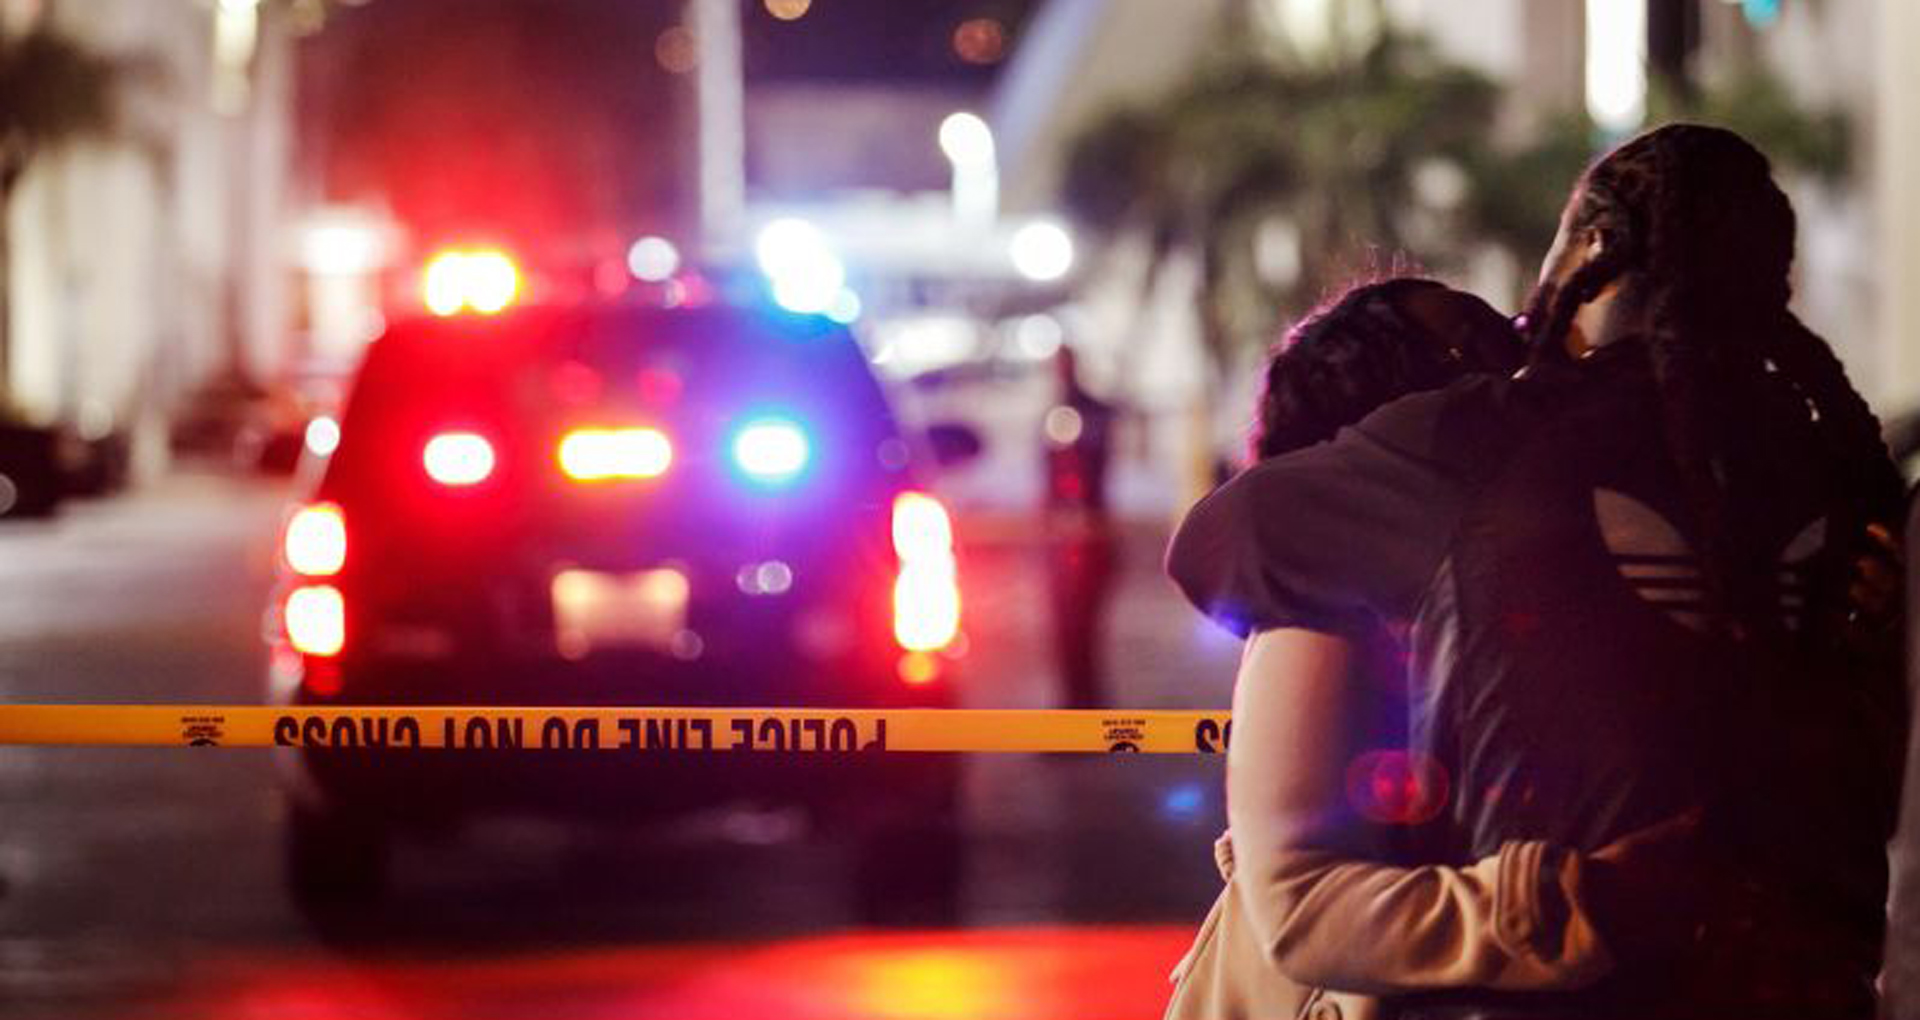 People console each other outside the Gable House Bowl bowling alley in Torrance after a fatal shooting occurred on Jan. 4, 2019. (Credit: Marcus Yam / Los Angeles Times)